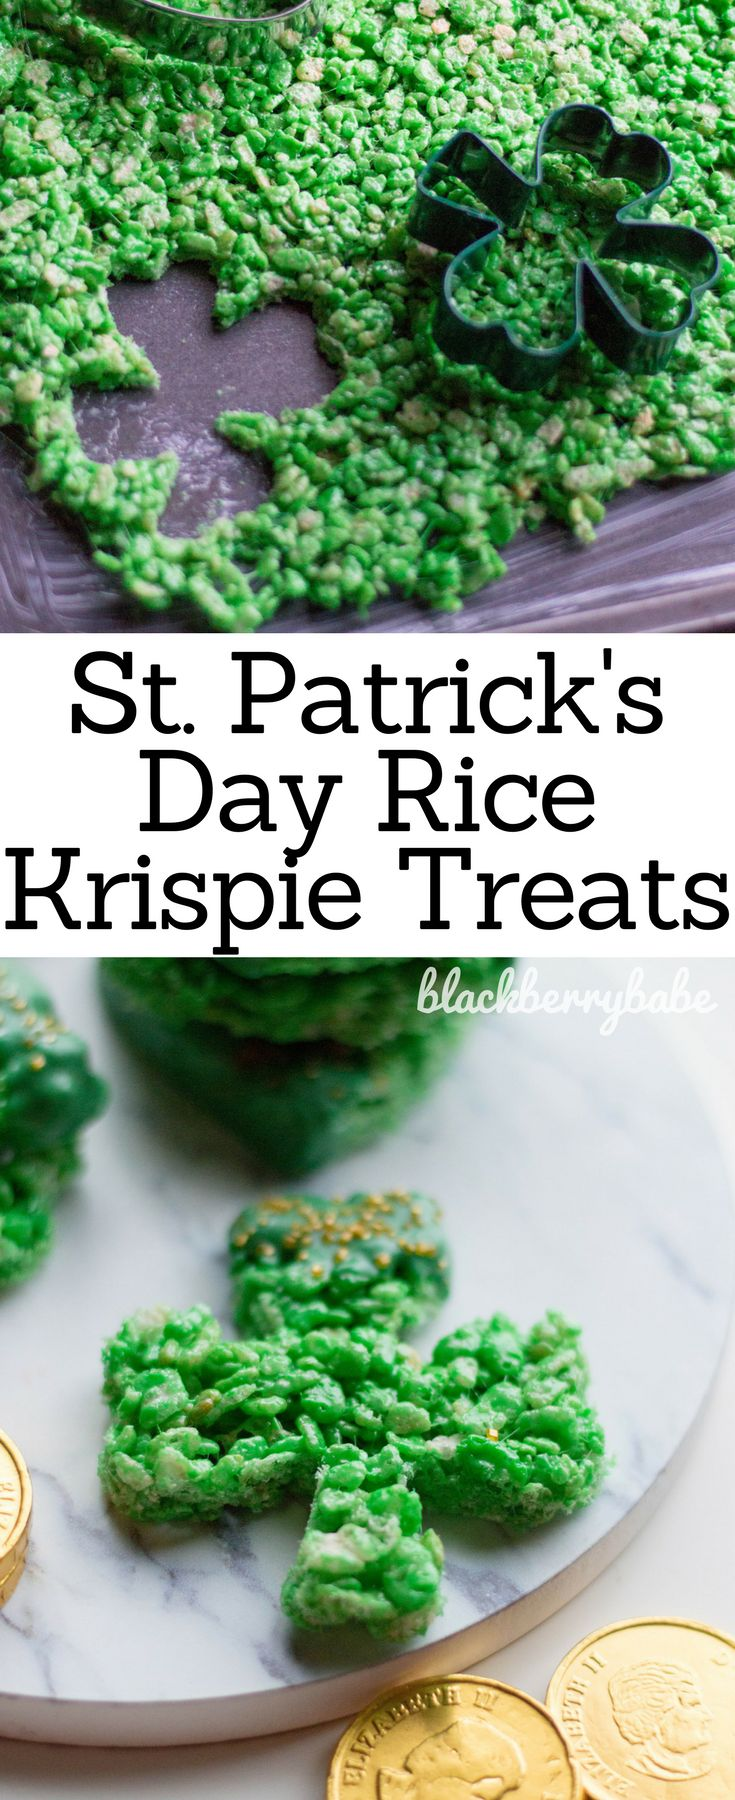 These St. Patrick's Day Rice Krispie Treats are deceptively easy to make! Use a shamrock cookie cutter to make these cute treats.